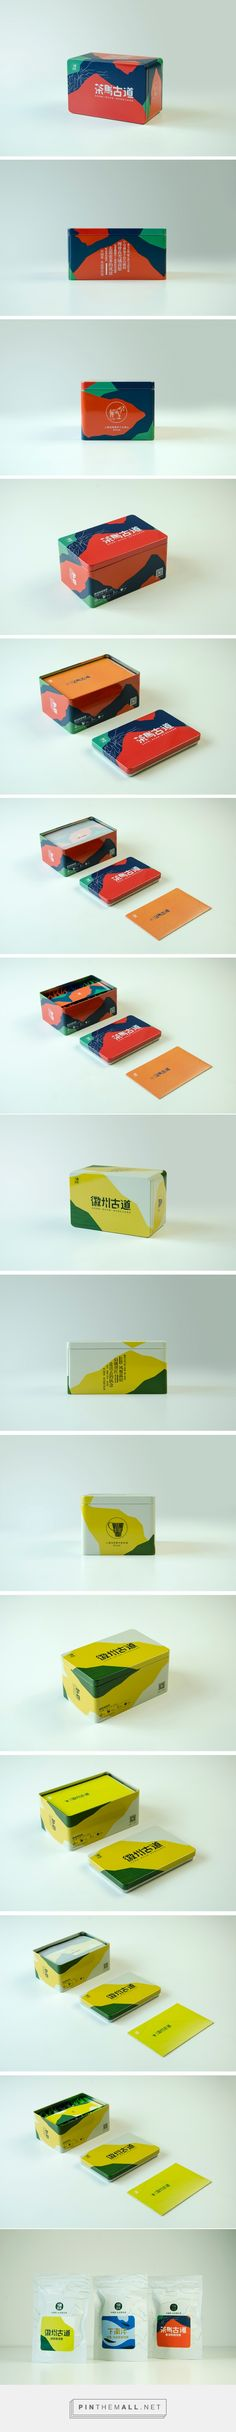 Xiaoman live tea Packaging Series / ZHU CHAO